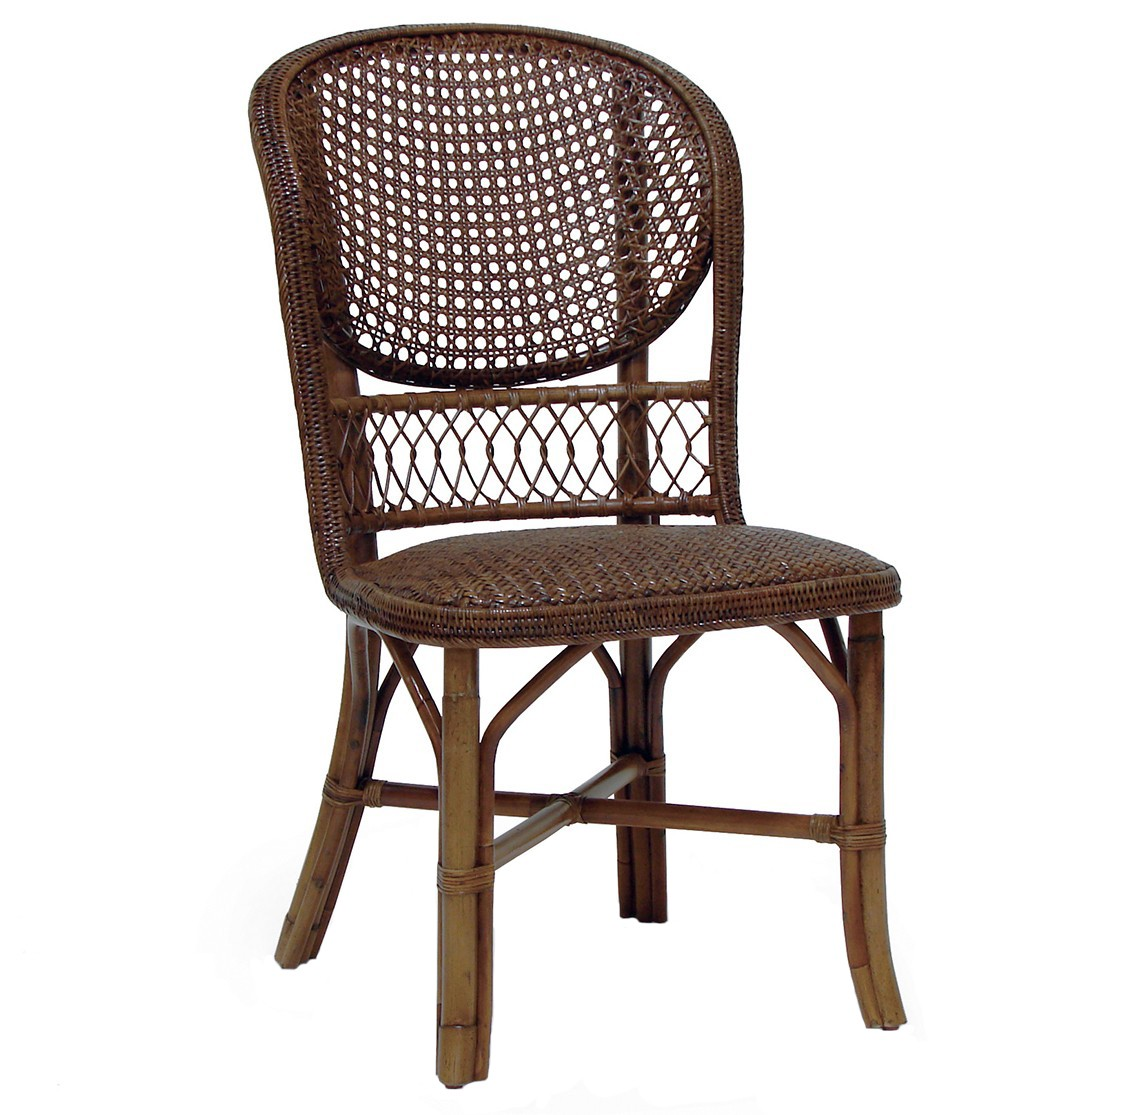 Incroyable Palecek Antique Cane Side Chair